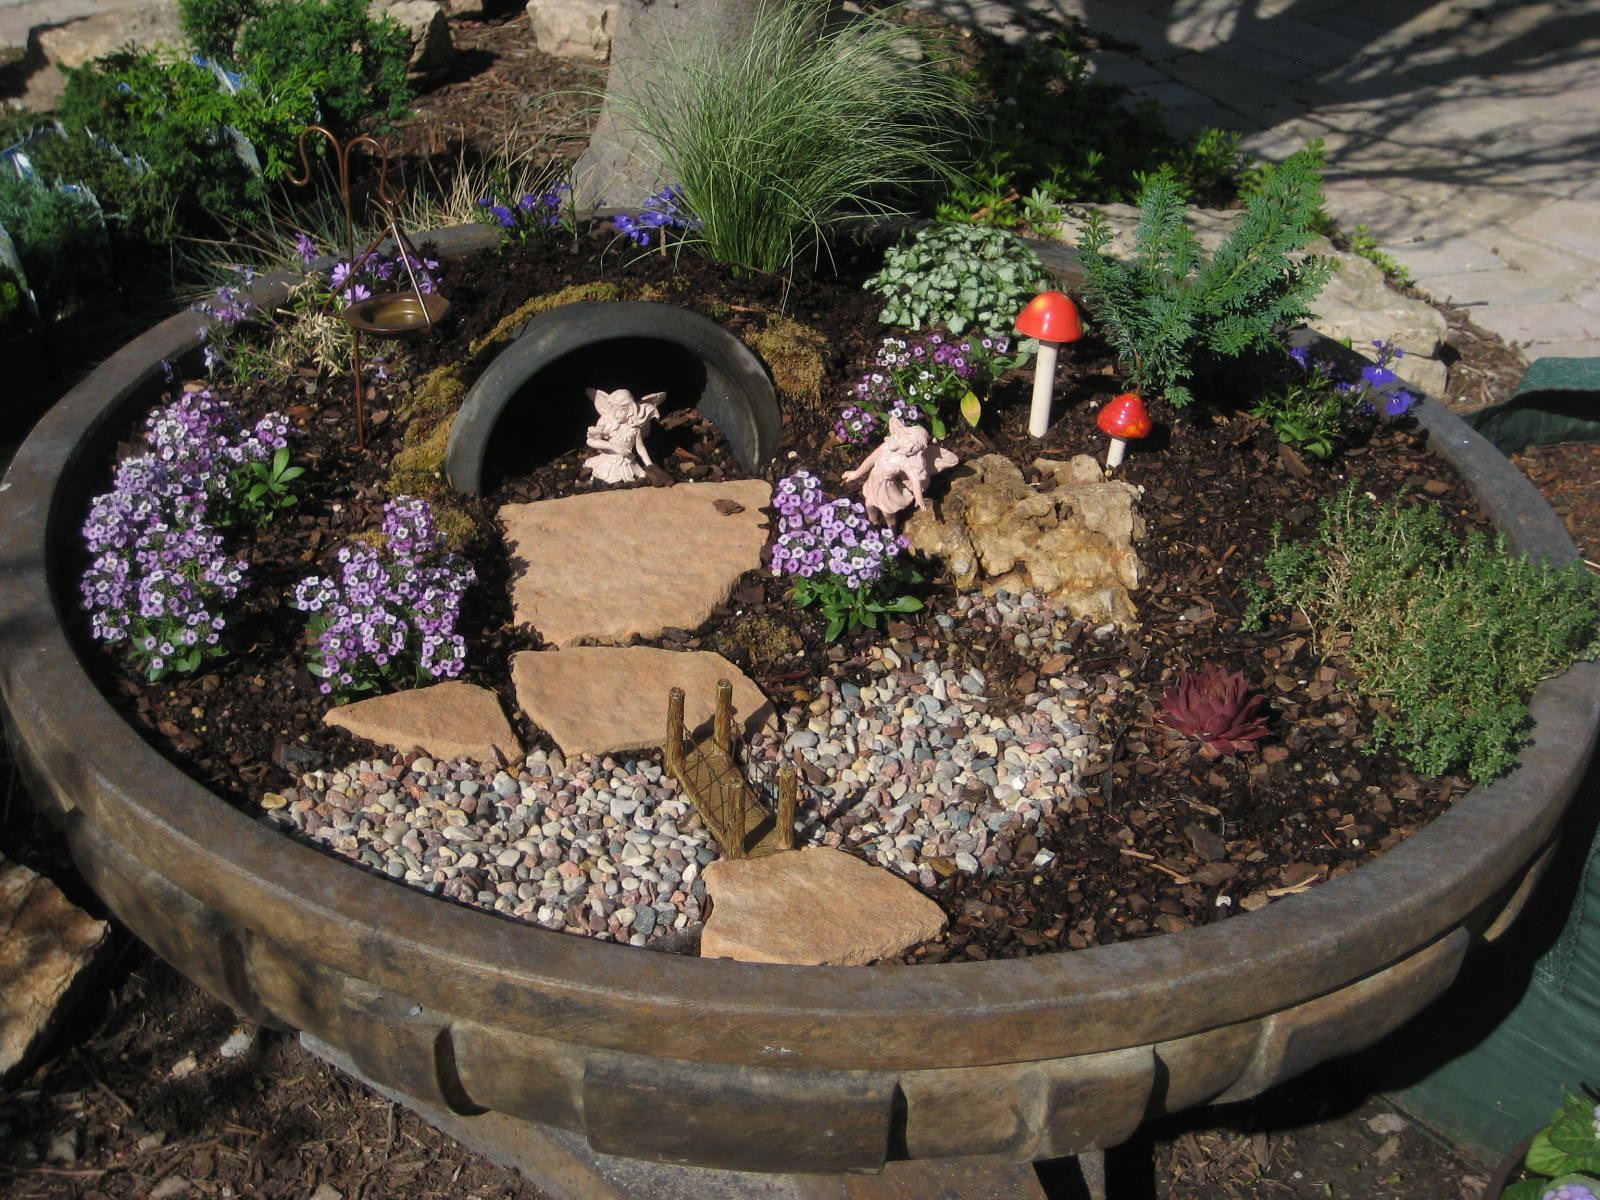 Fairy Garden in Broken Fountain